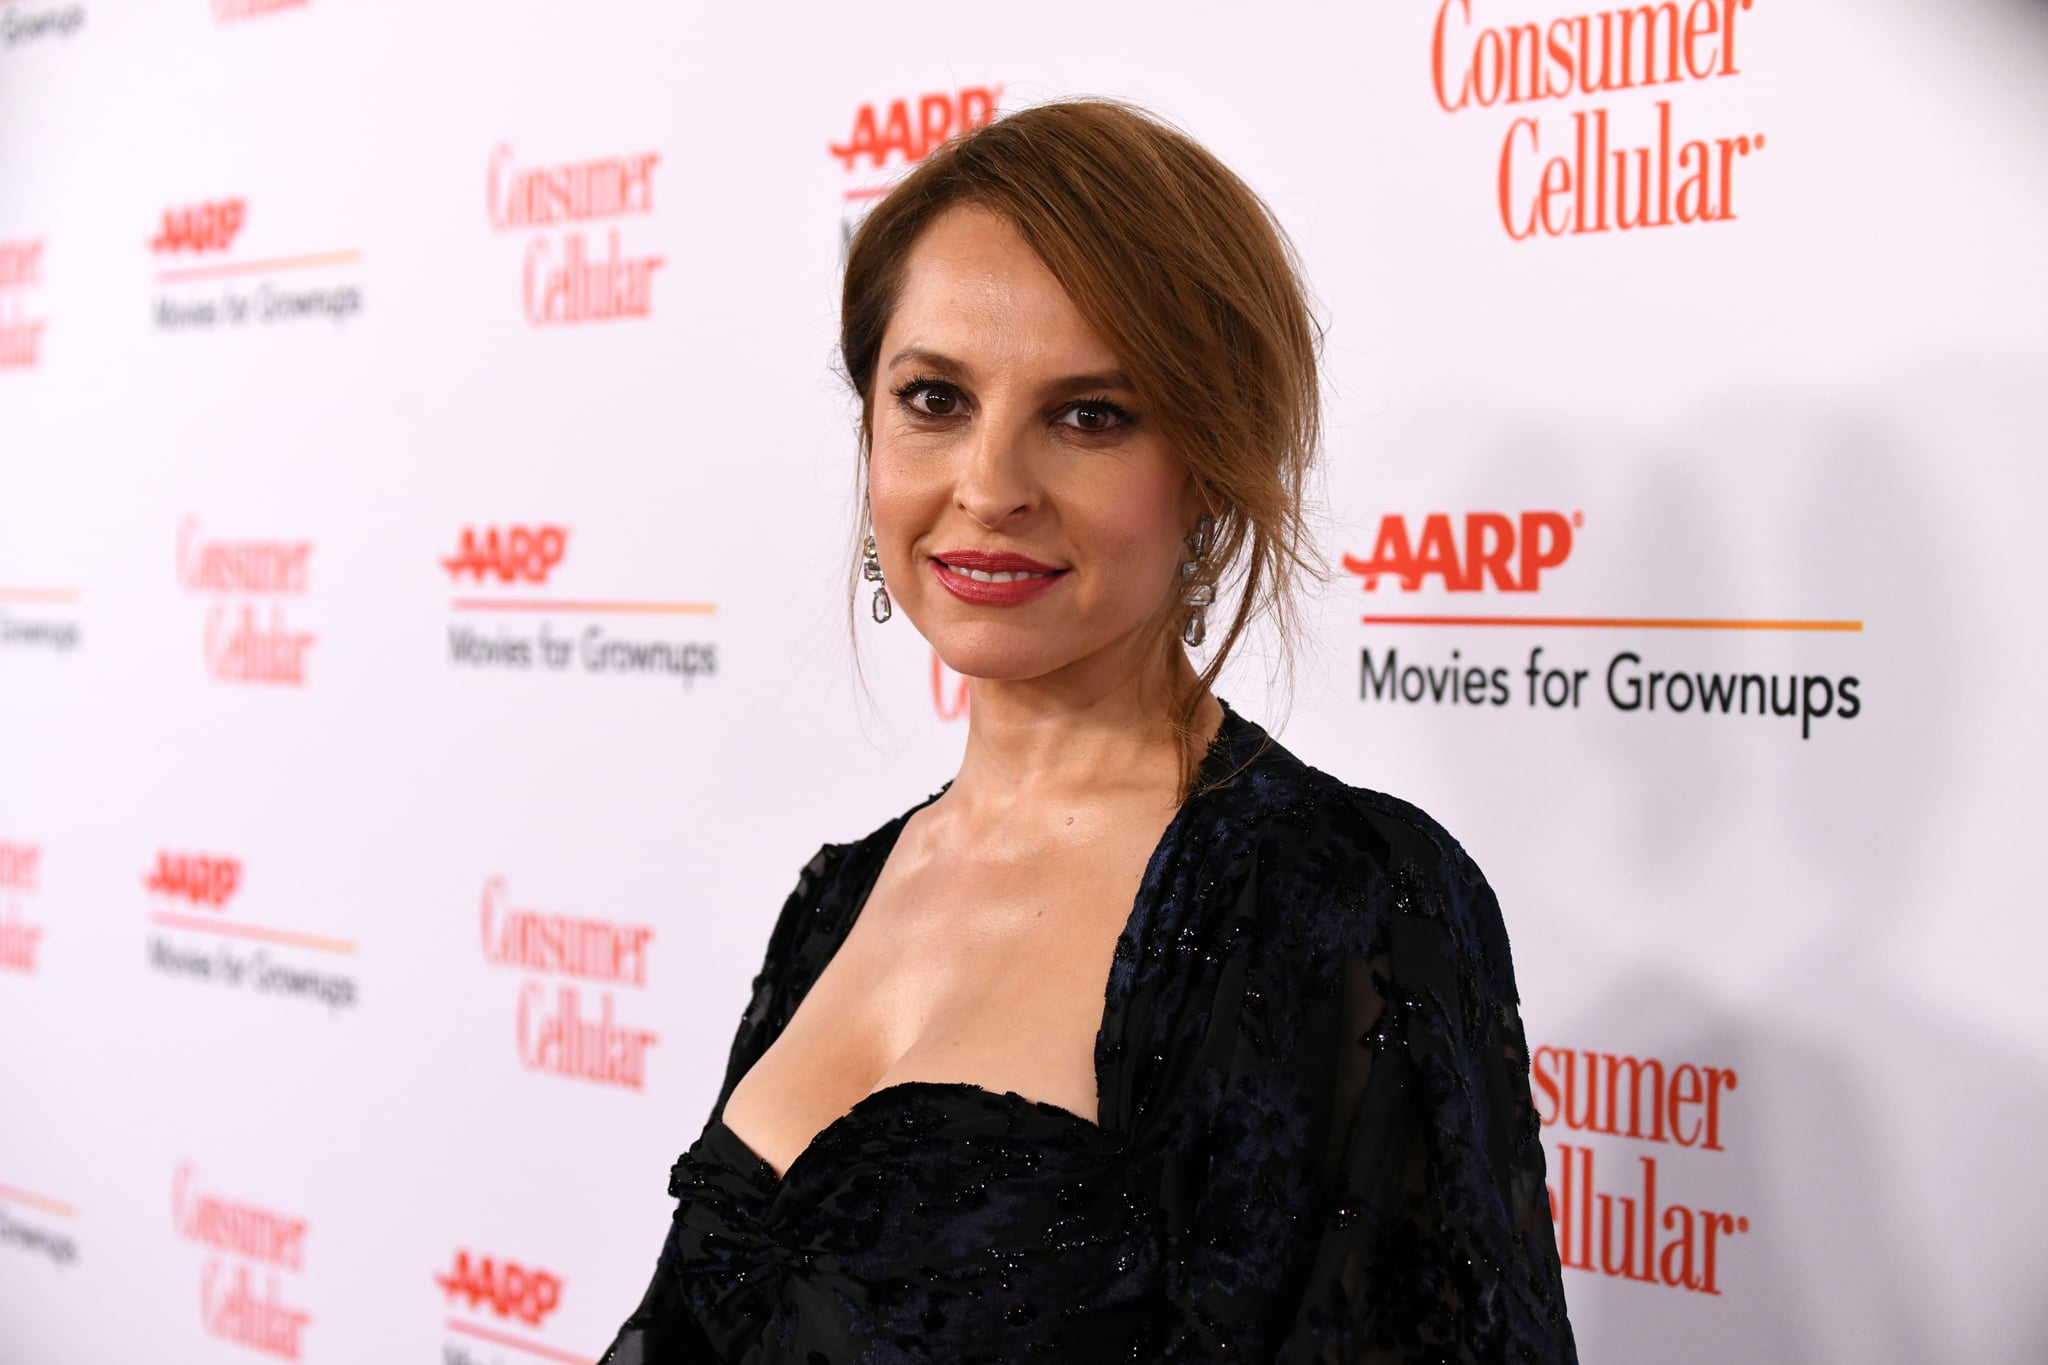 BEVERLY HILLS, CALIFORNIA - FEBRUARY 04: Marina de Tavira attends AARP The Magazine's 18th Annual Movies for Grownups Awards at the Beverly Wilshire Four Seasons Hotel on February 04, 2019 in Beverly Hills, California. (Photo by Michael Kovac/Getty Images for AARP)